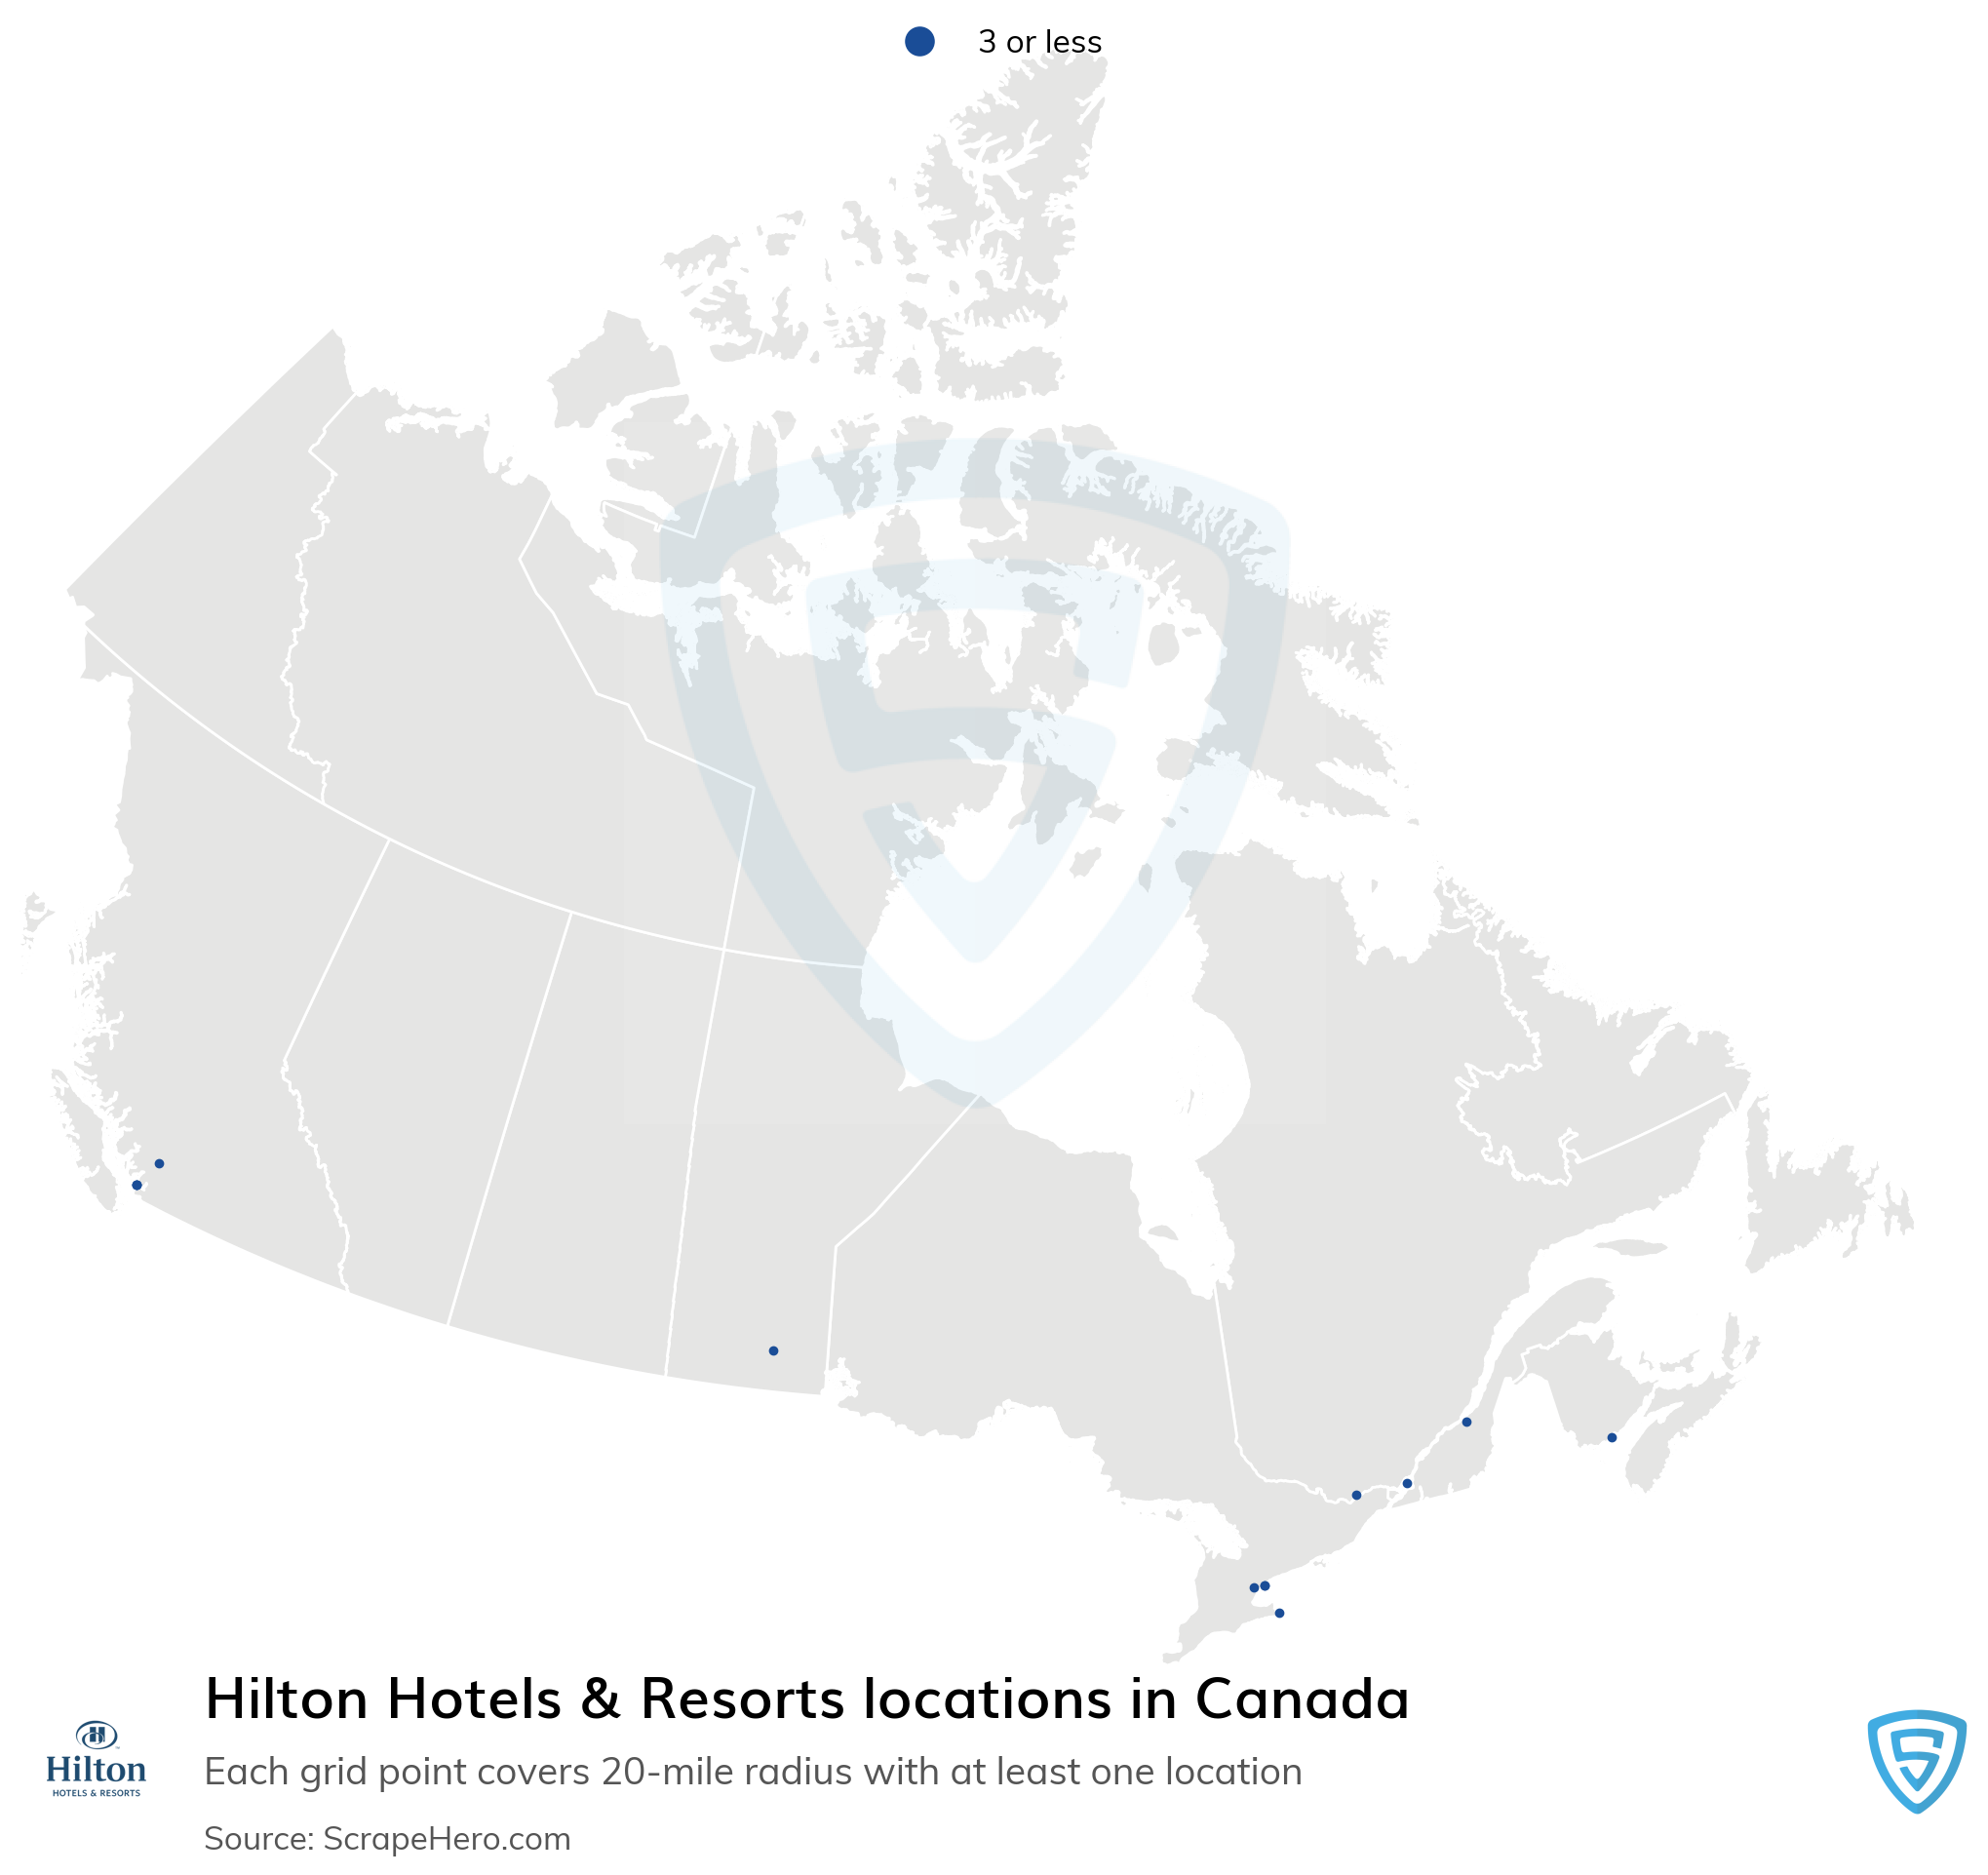 Map of Hilton Hotels & Resorts locations in Canada in 2021